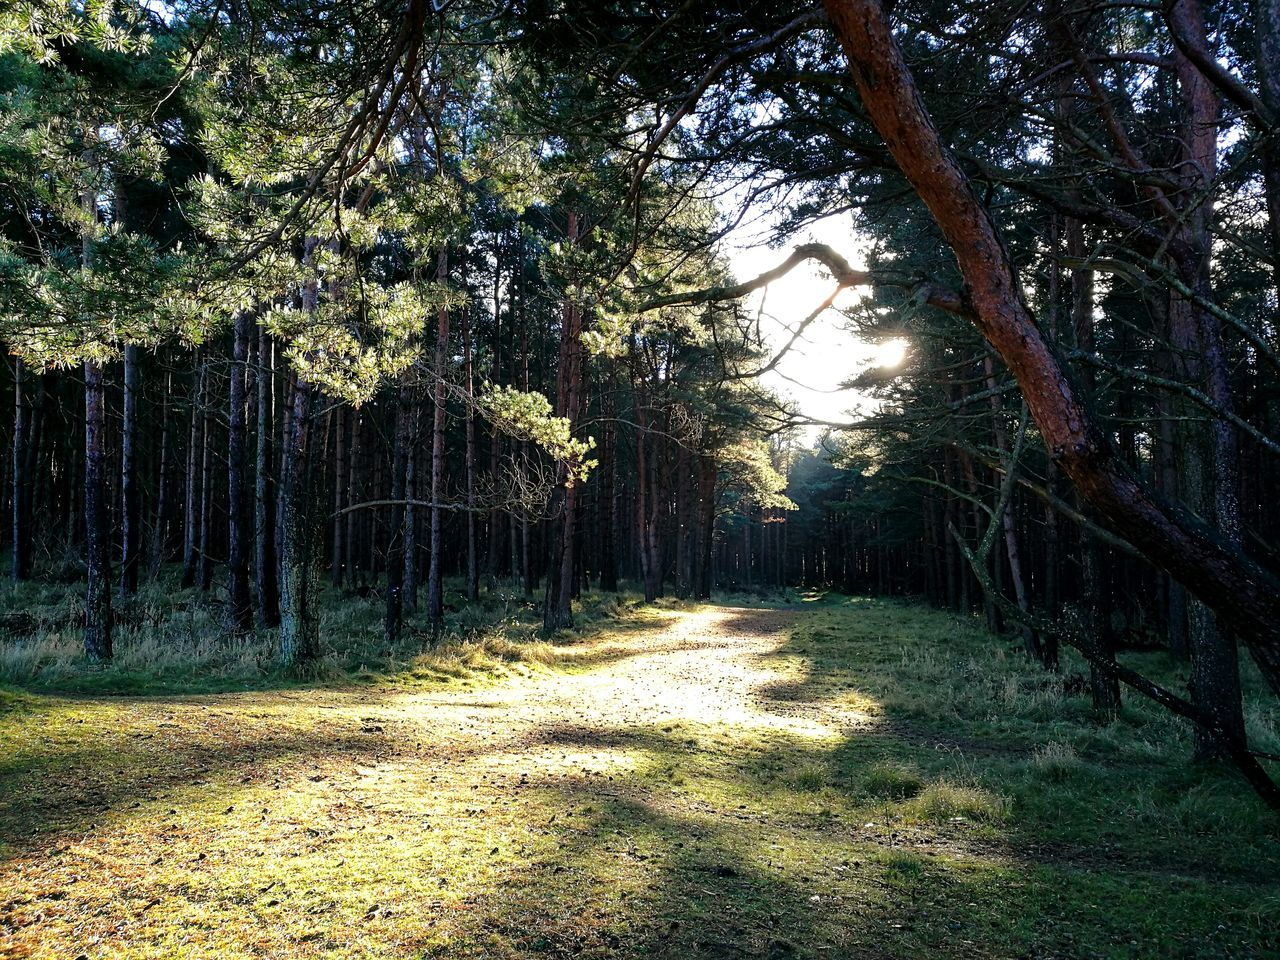 tree, forest, nature, growth, tranquility, sunlight, no people, outdoors, day